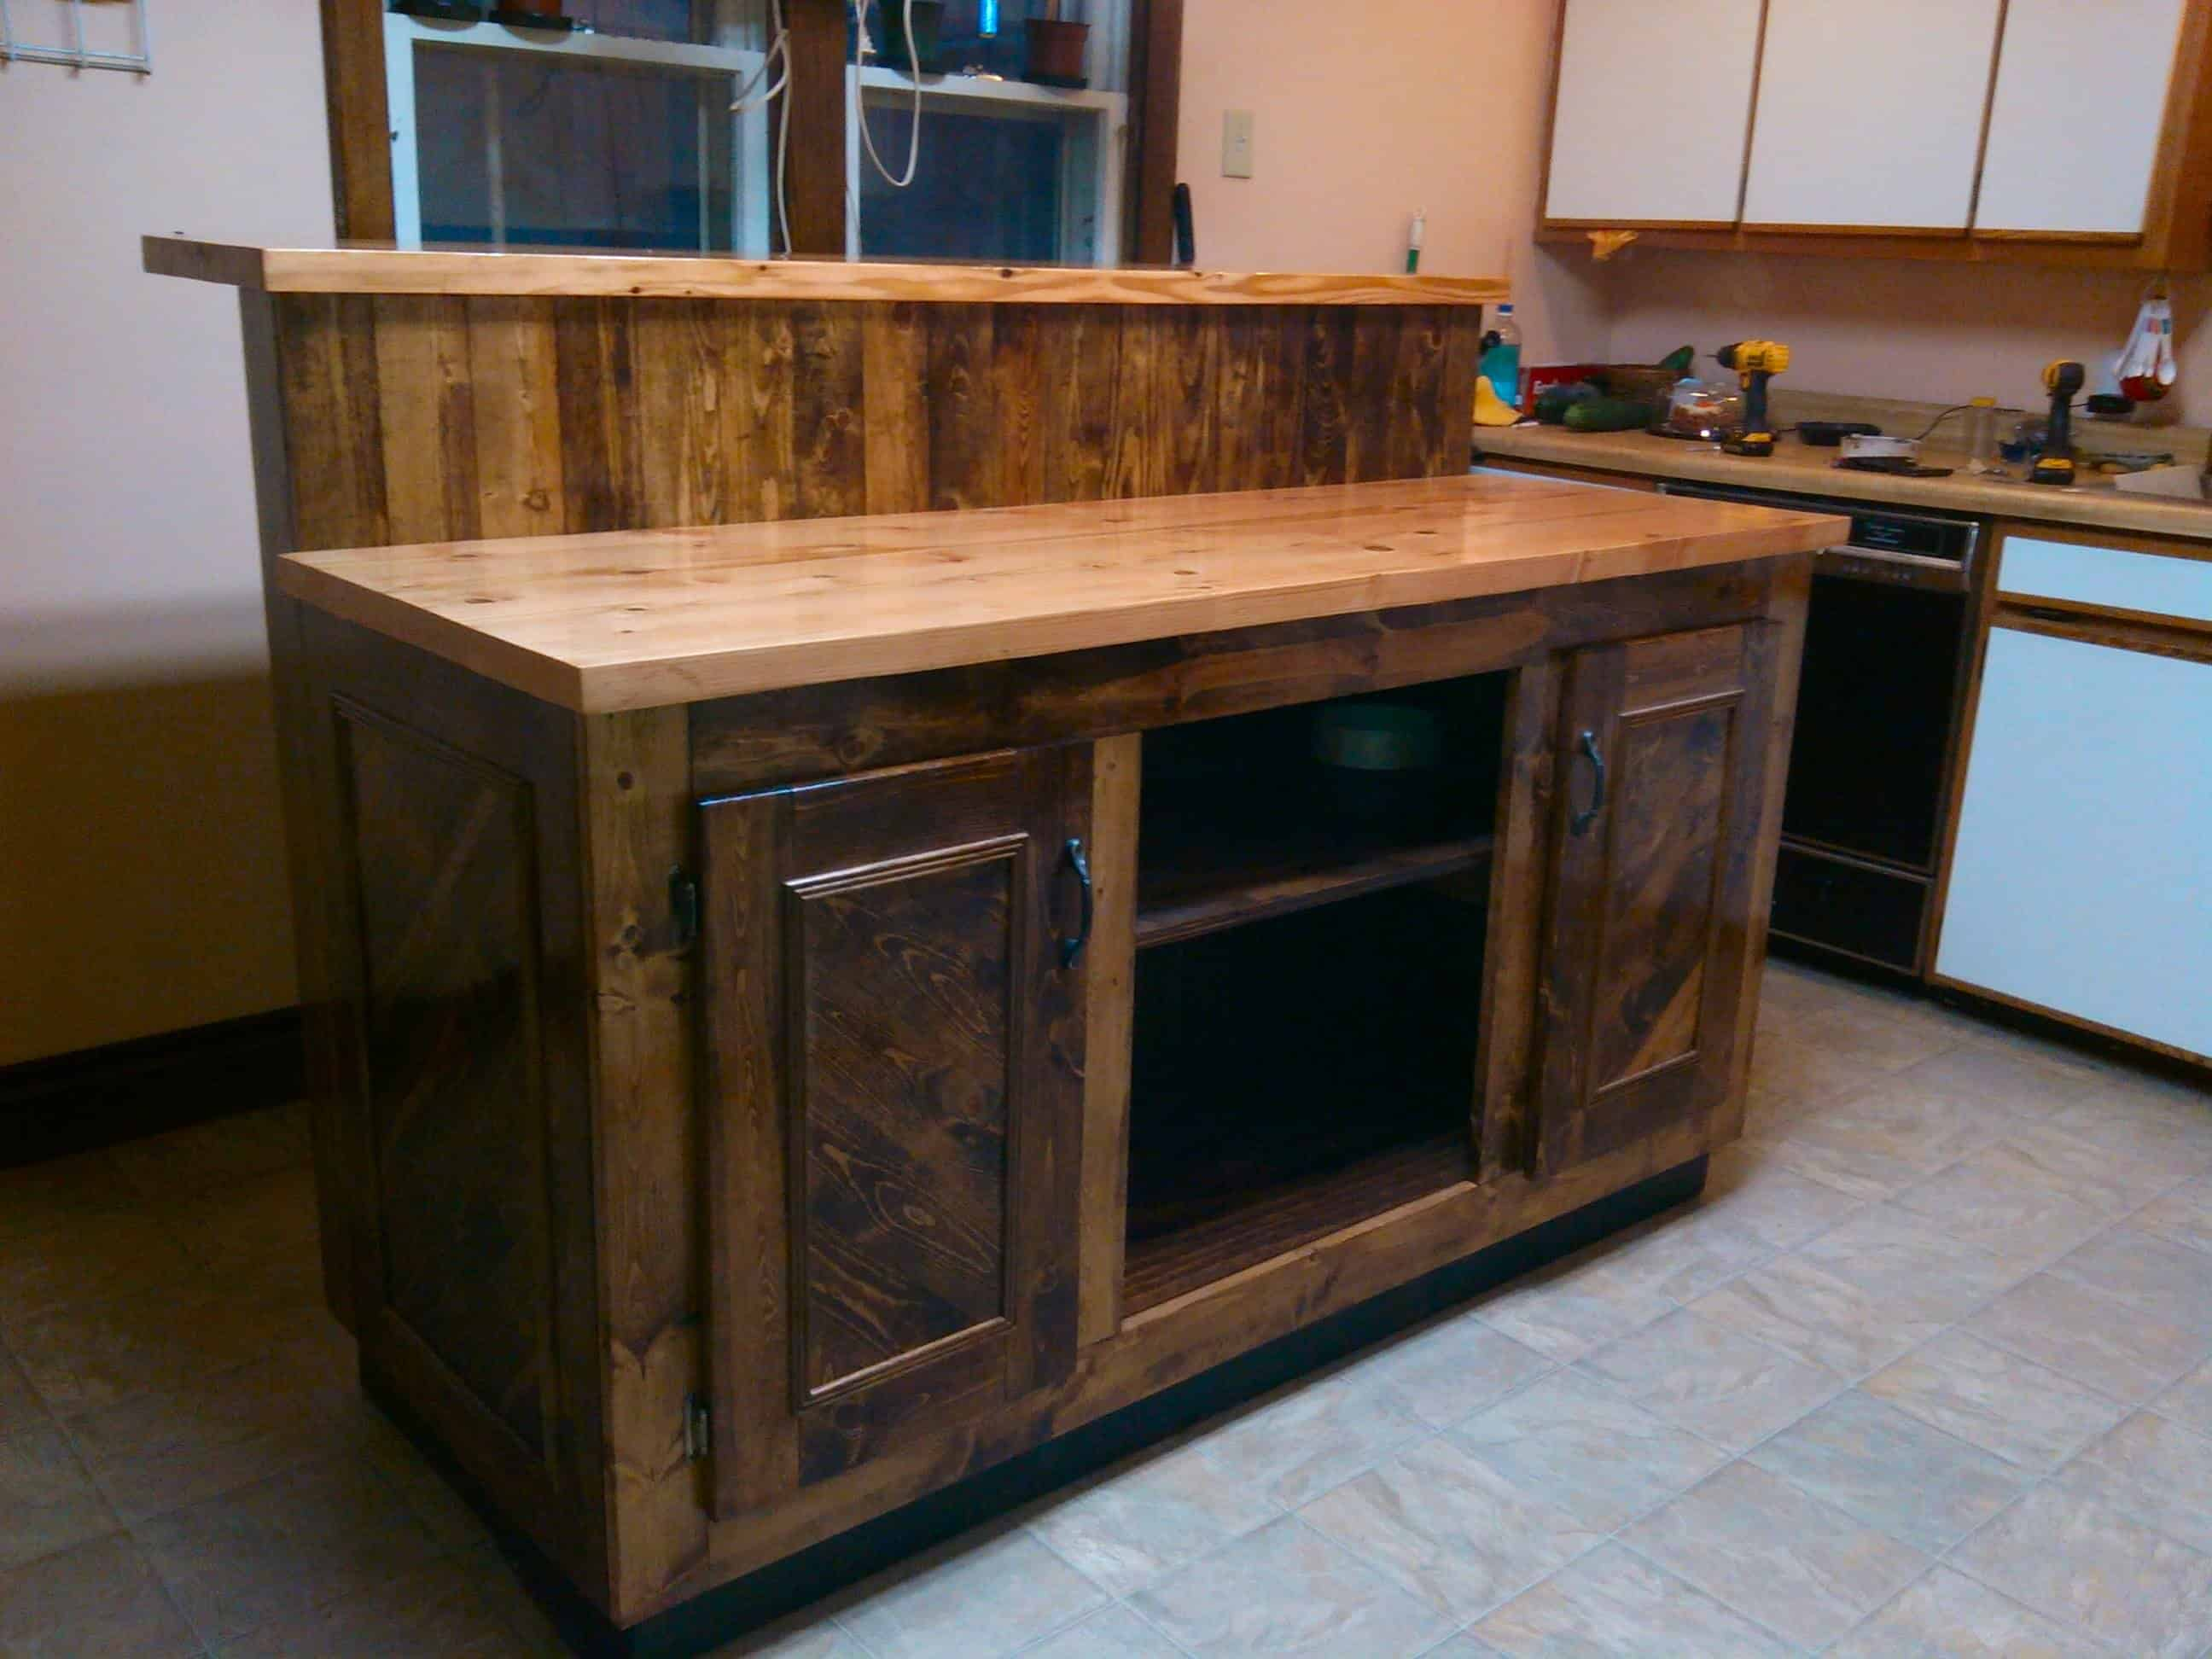 Magnificent Two tier Pallet Kitchen Island • 1001 Pallets